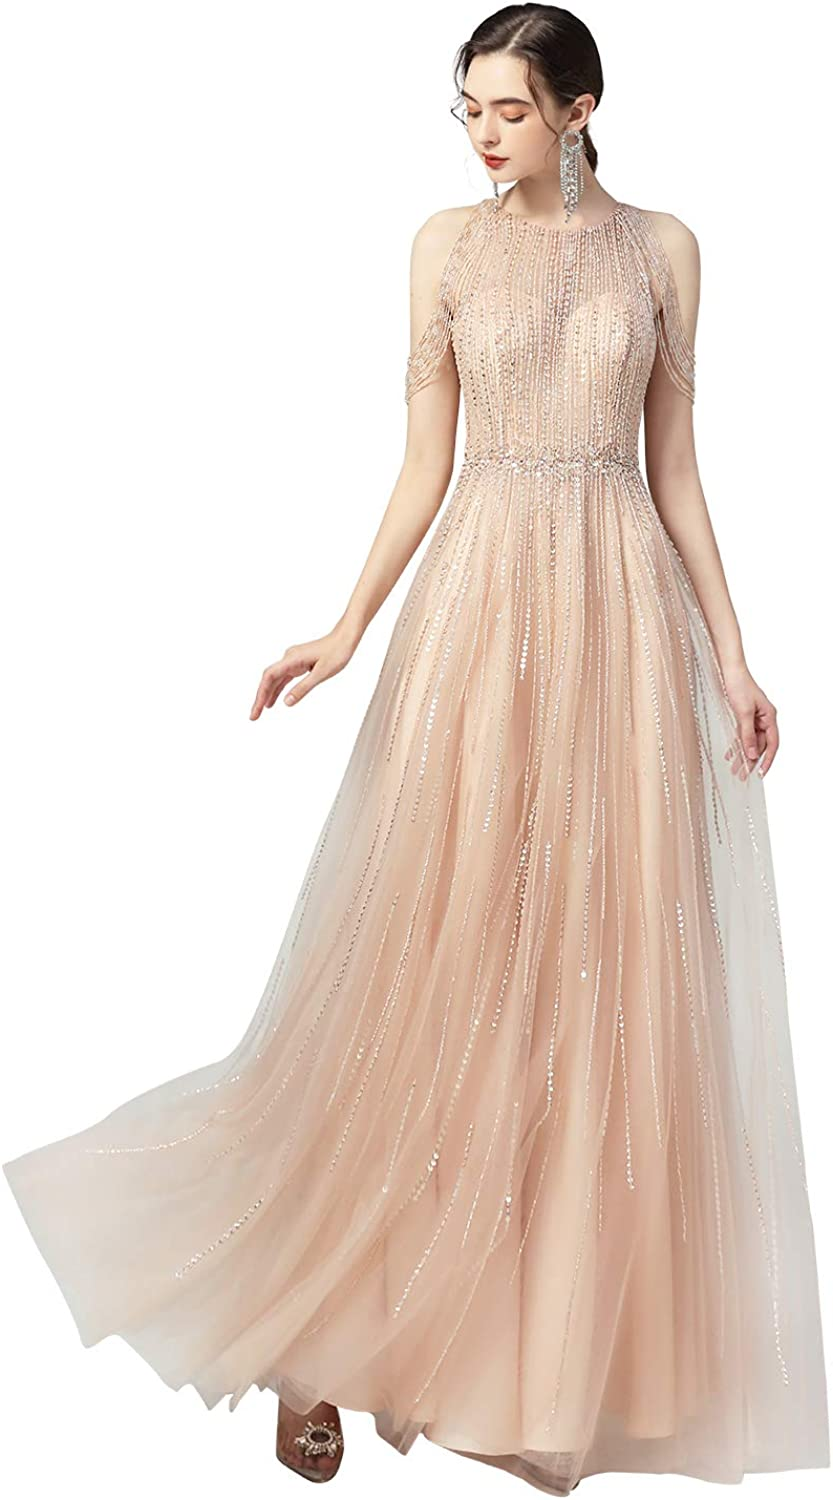 Sarahbridal Women's Beading Sequin Prom Dresses Crsyt Limited Special Price Long Party All items free shipping